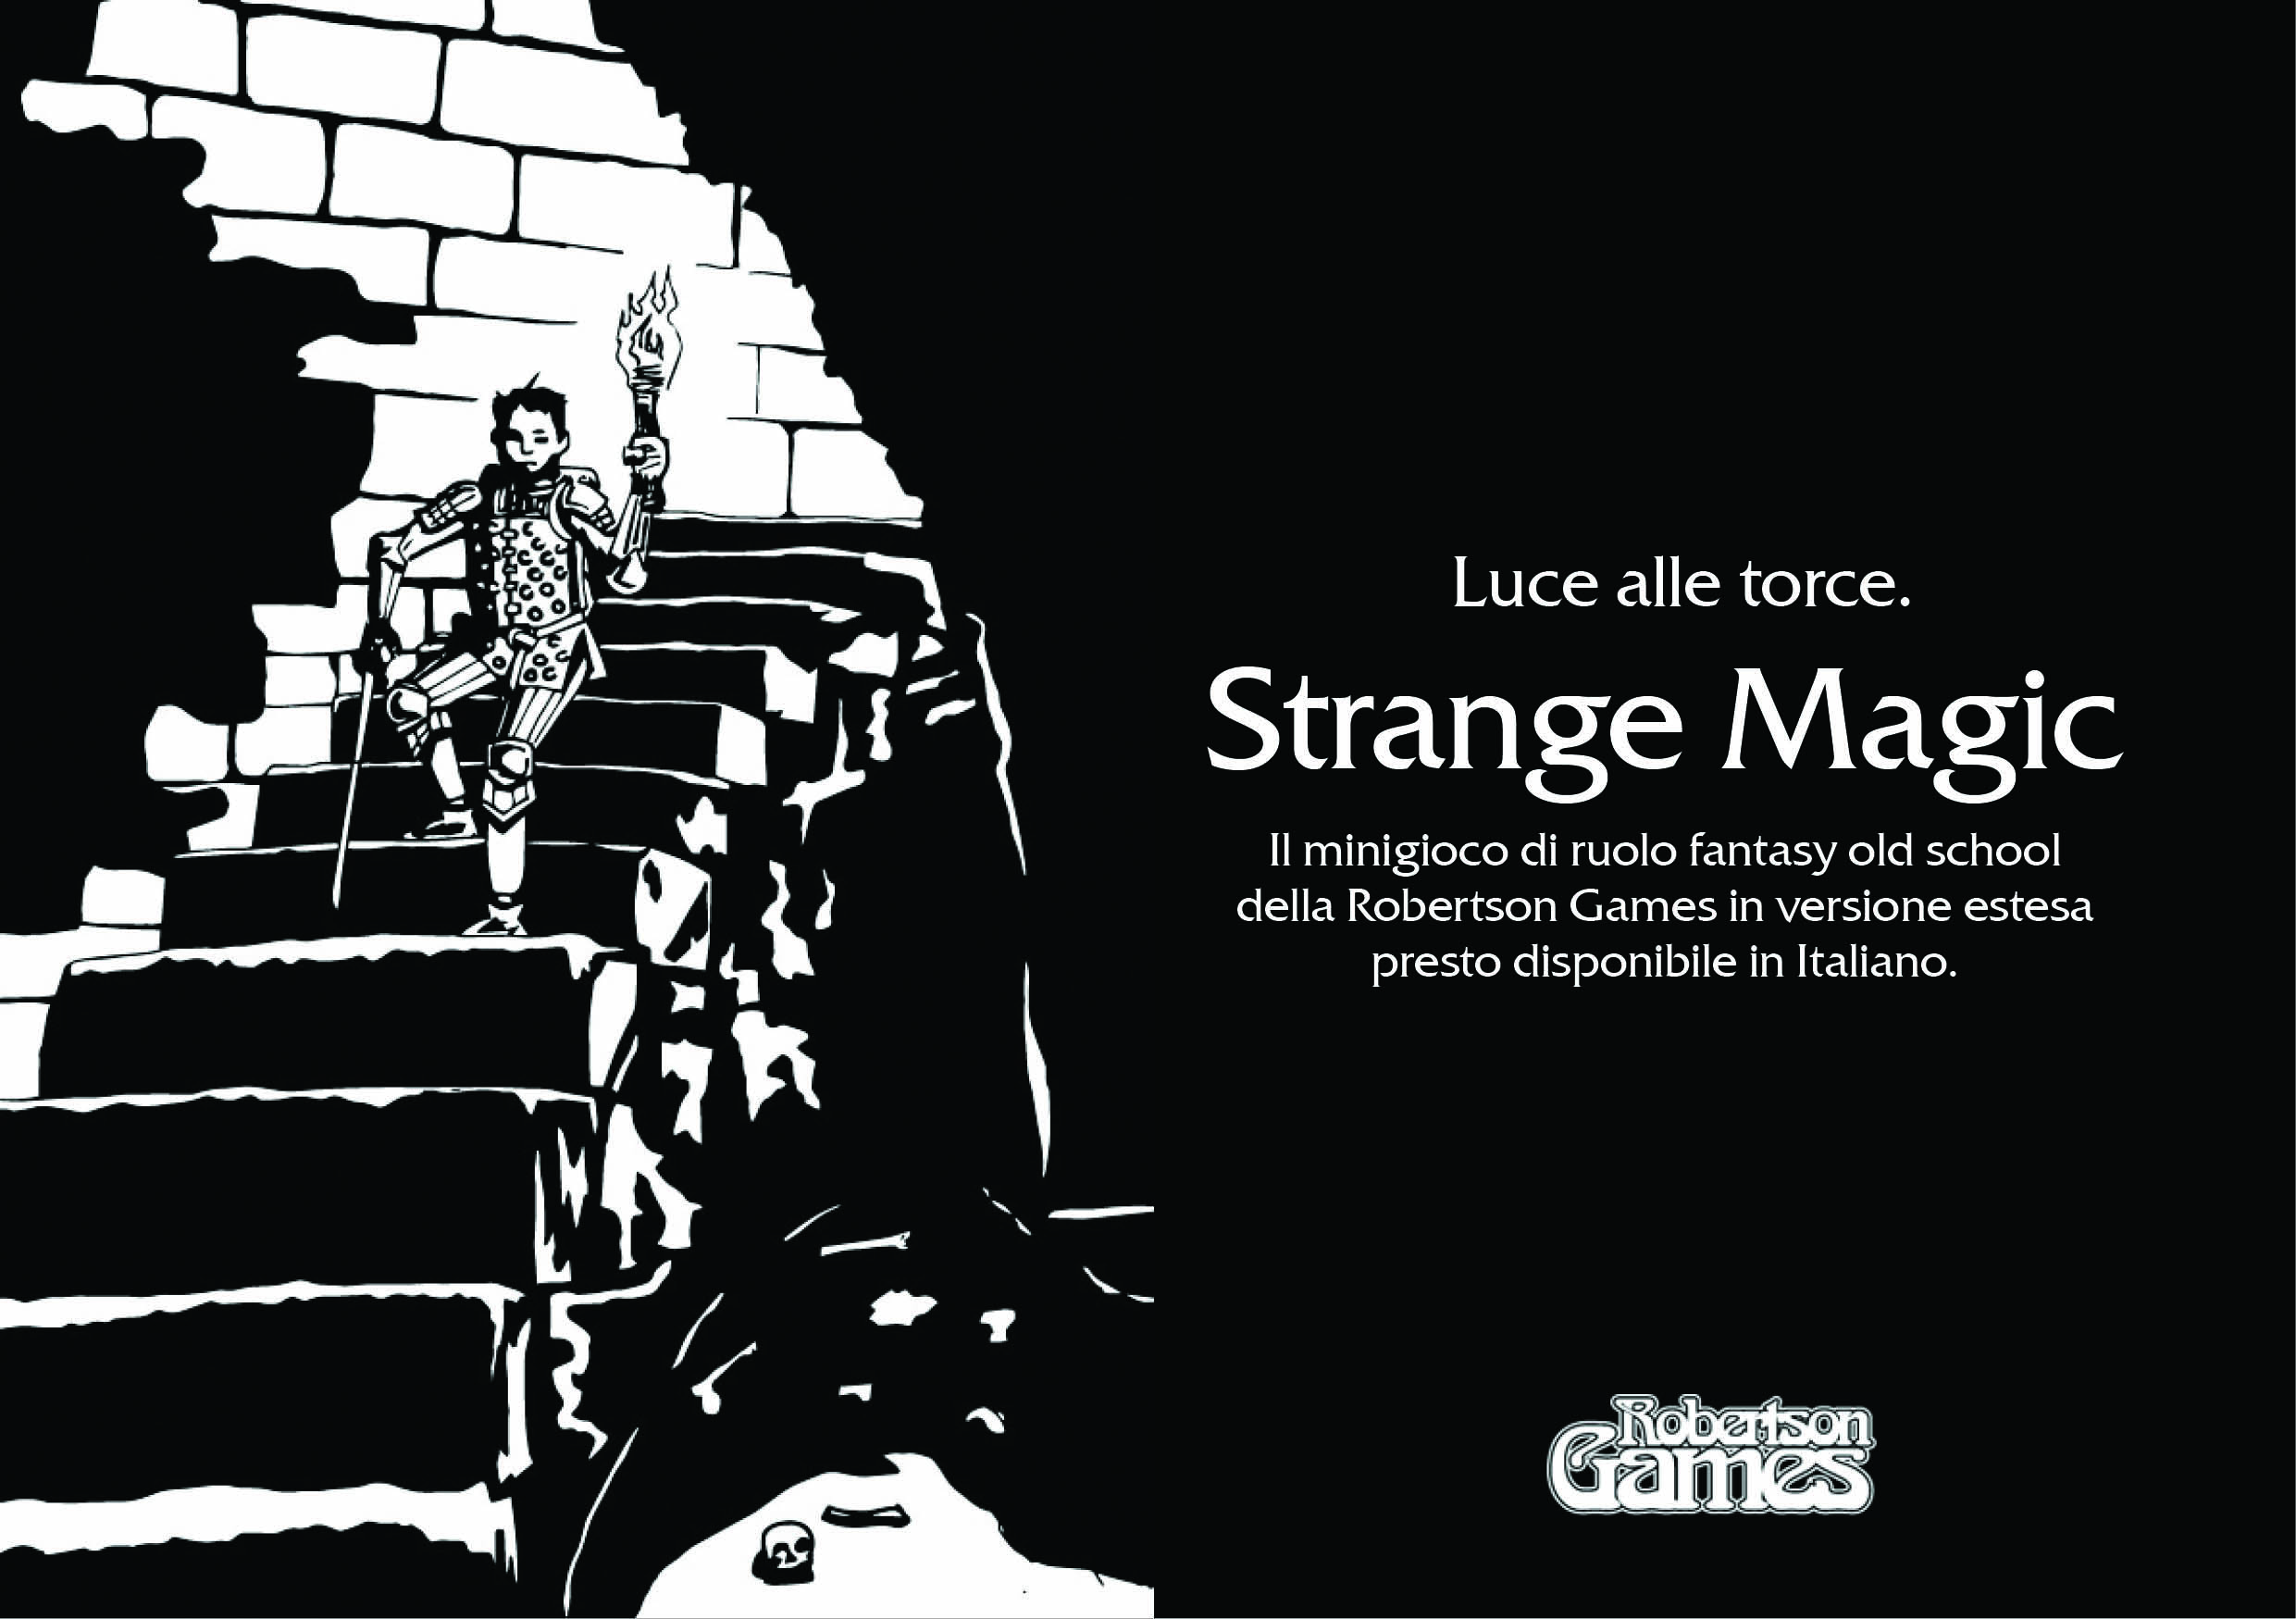 Strange Magic Teaser Adv v2